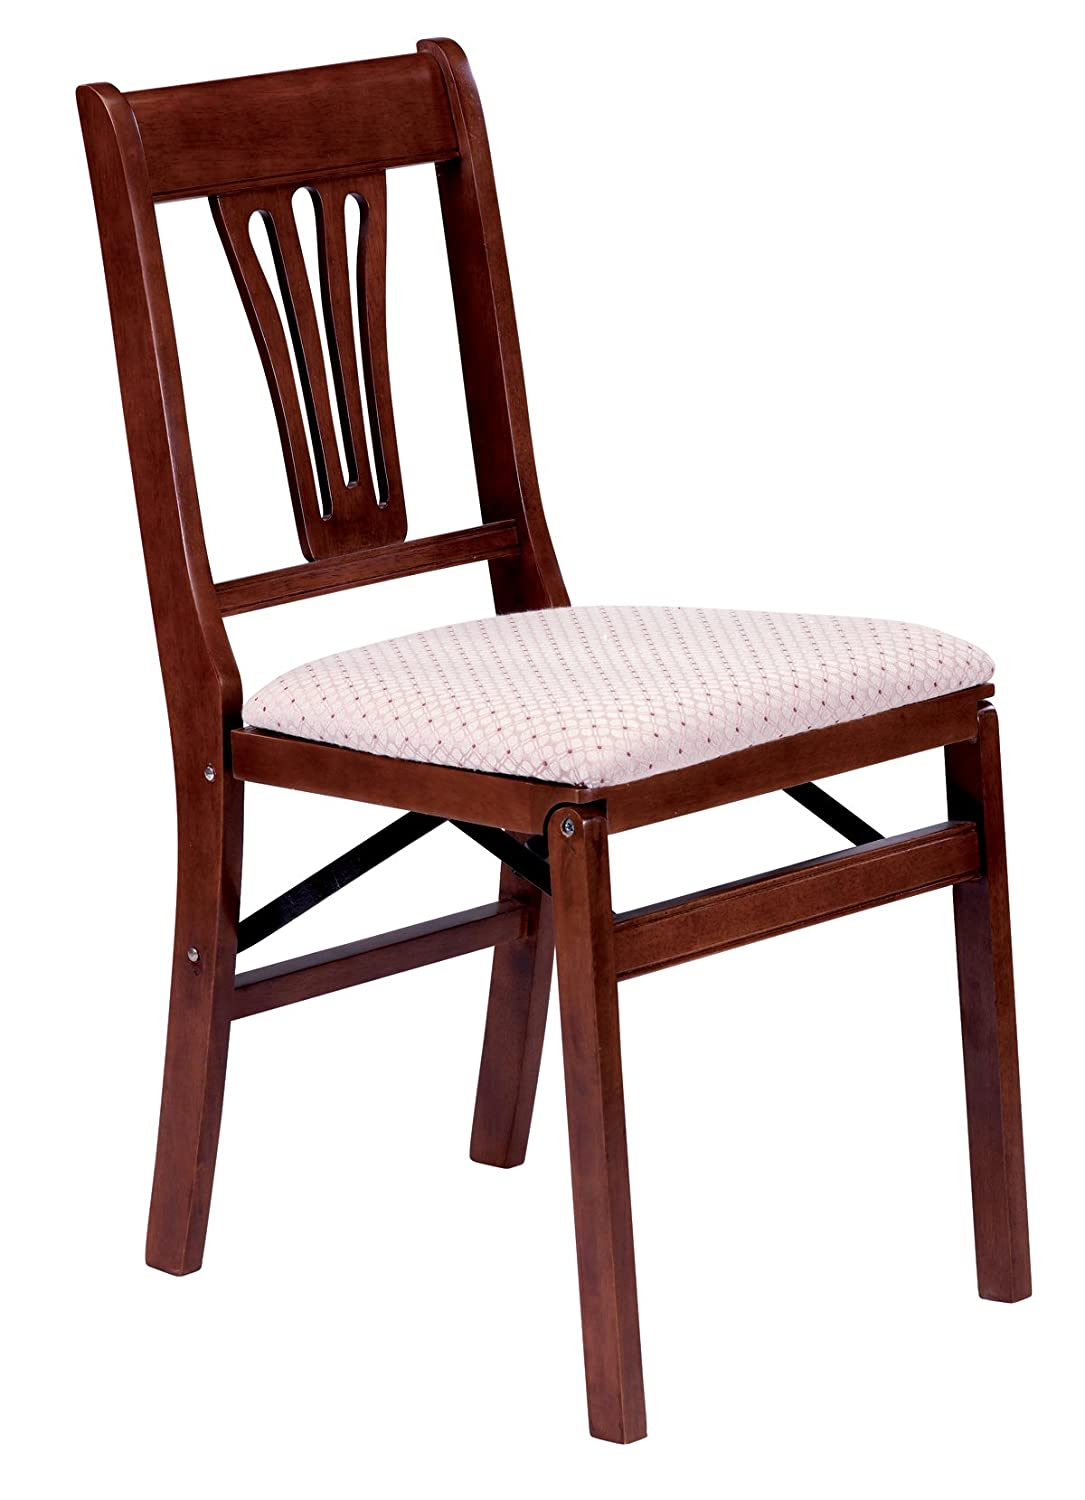 Stakmore Urn Back Folding Chair Finish, Set of 2, Cherry